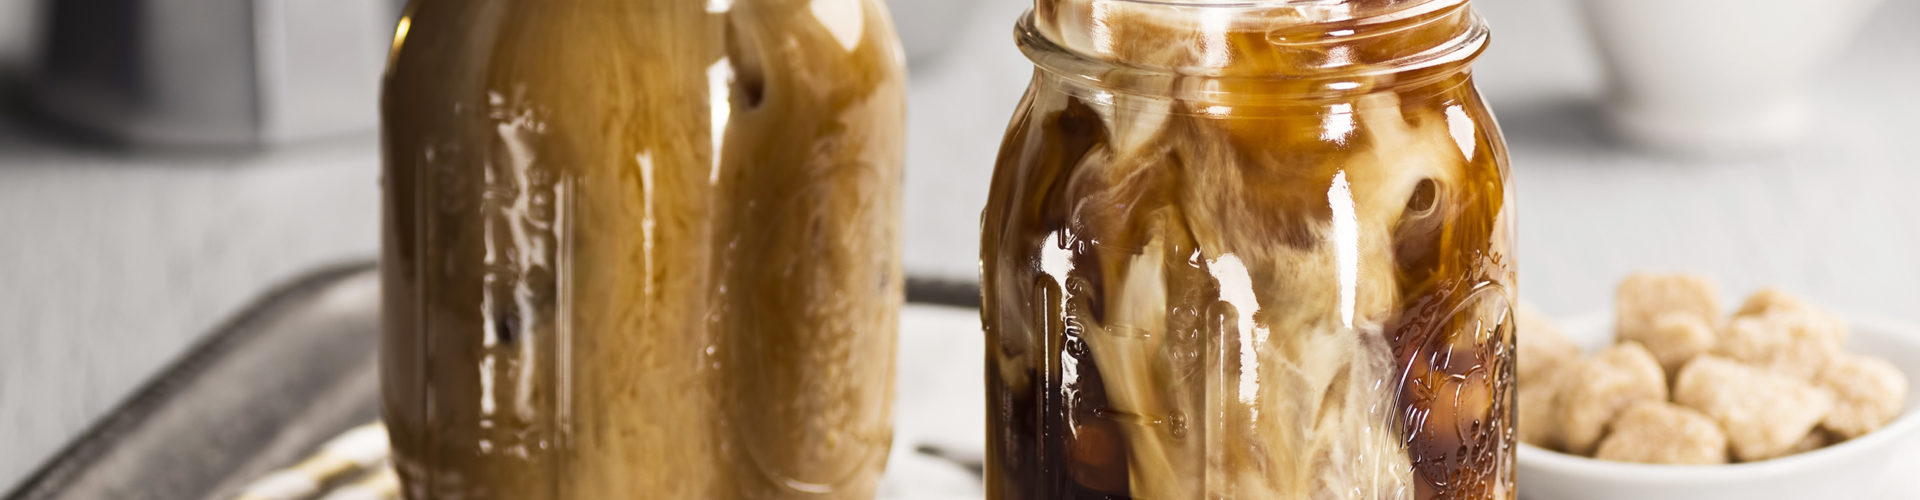 5 Great Ways to Make Iced Coffee at Home.